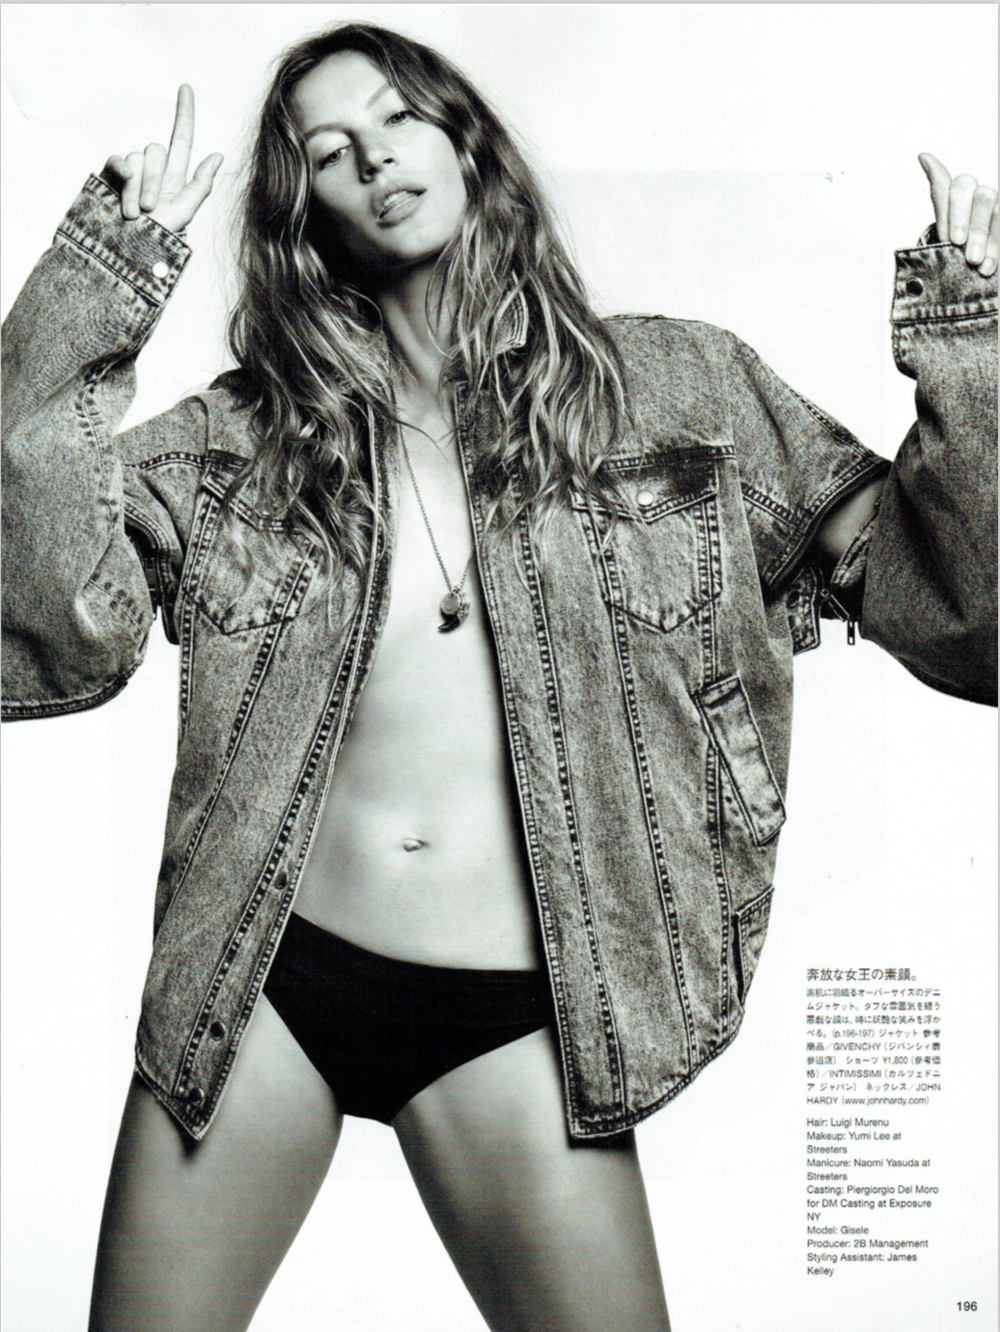 Gisele wears Intimissimi briefs in February Vogue Japan